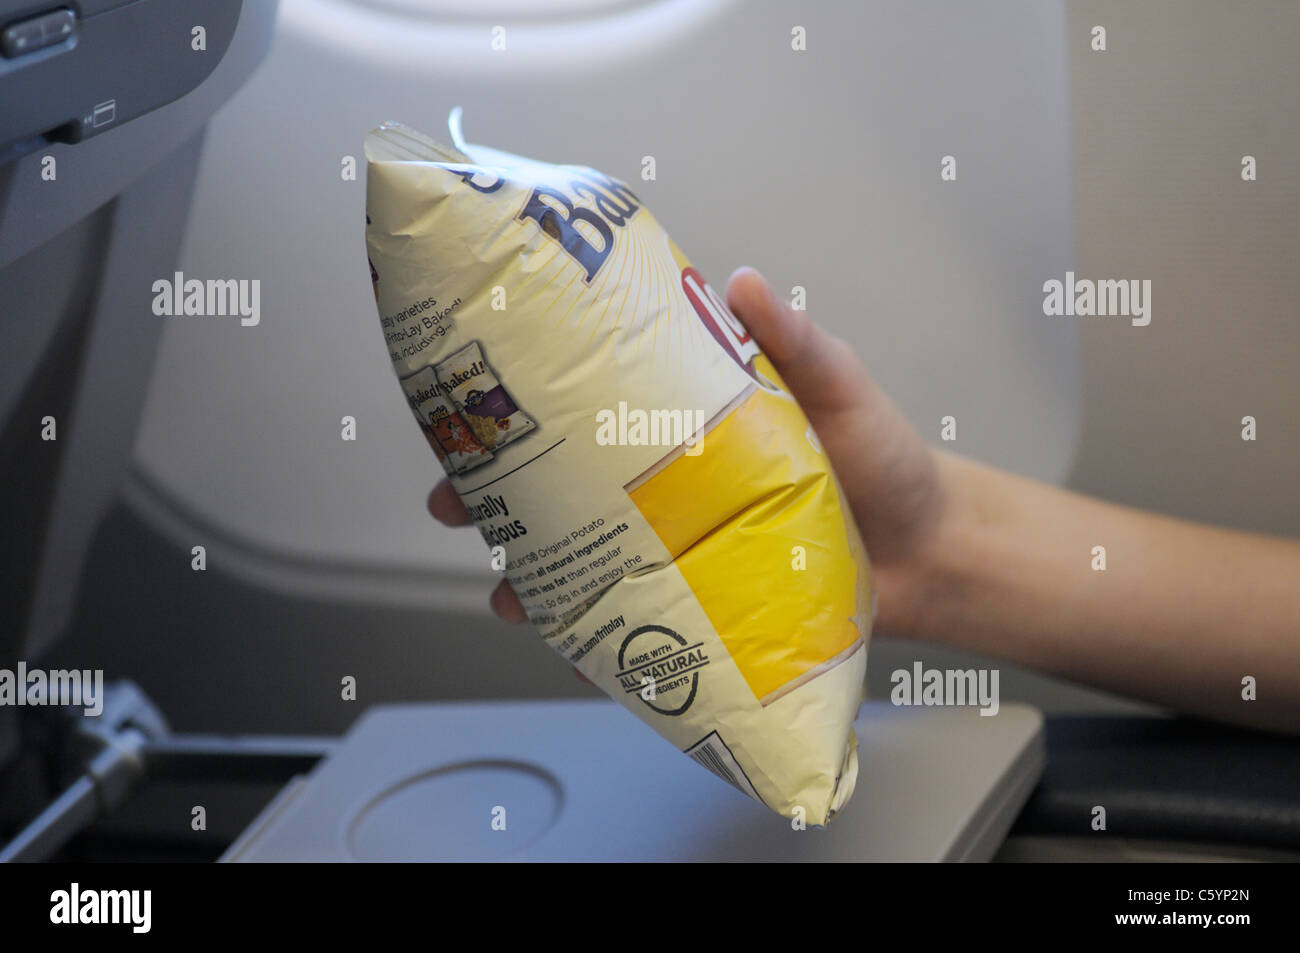 Chip bag puffed up because of lower atmospheric pressure at high altitude (38,000 feet on airline). Sequence with - Stock Image